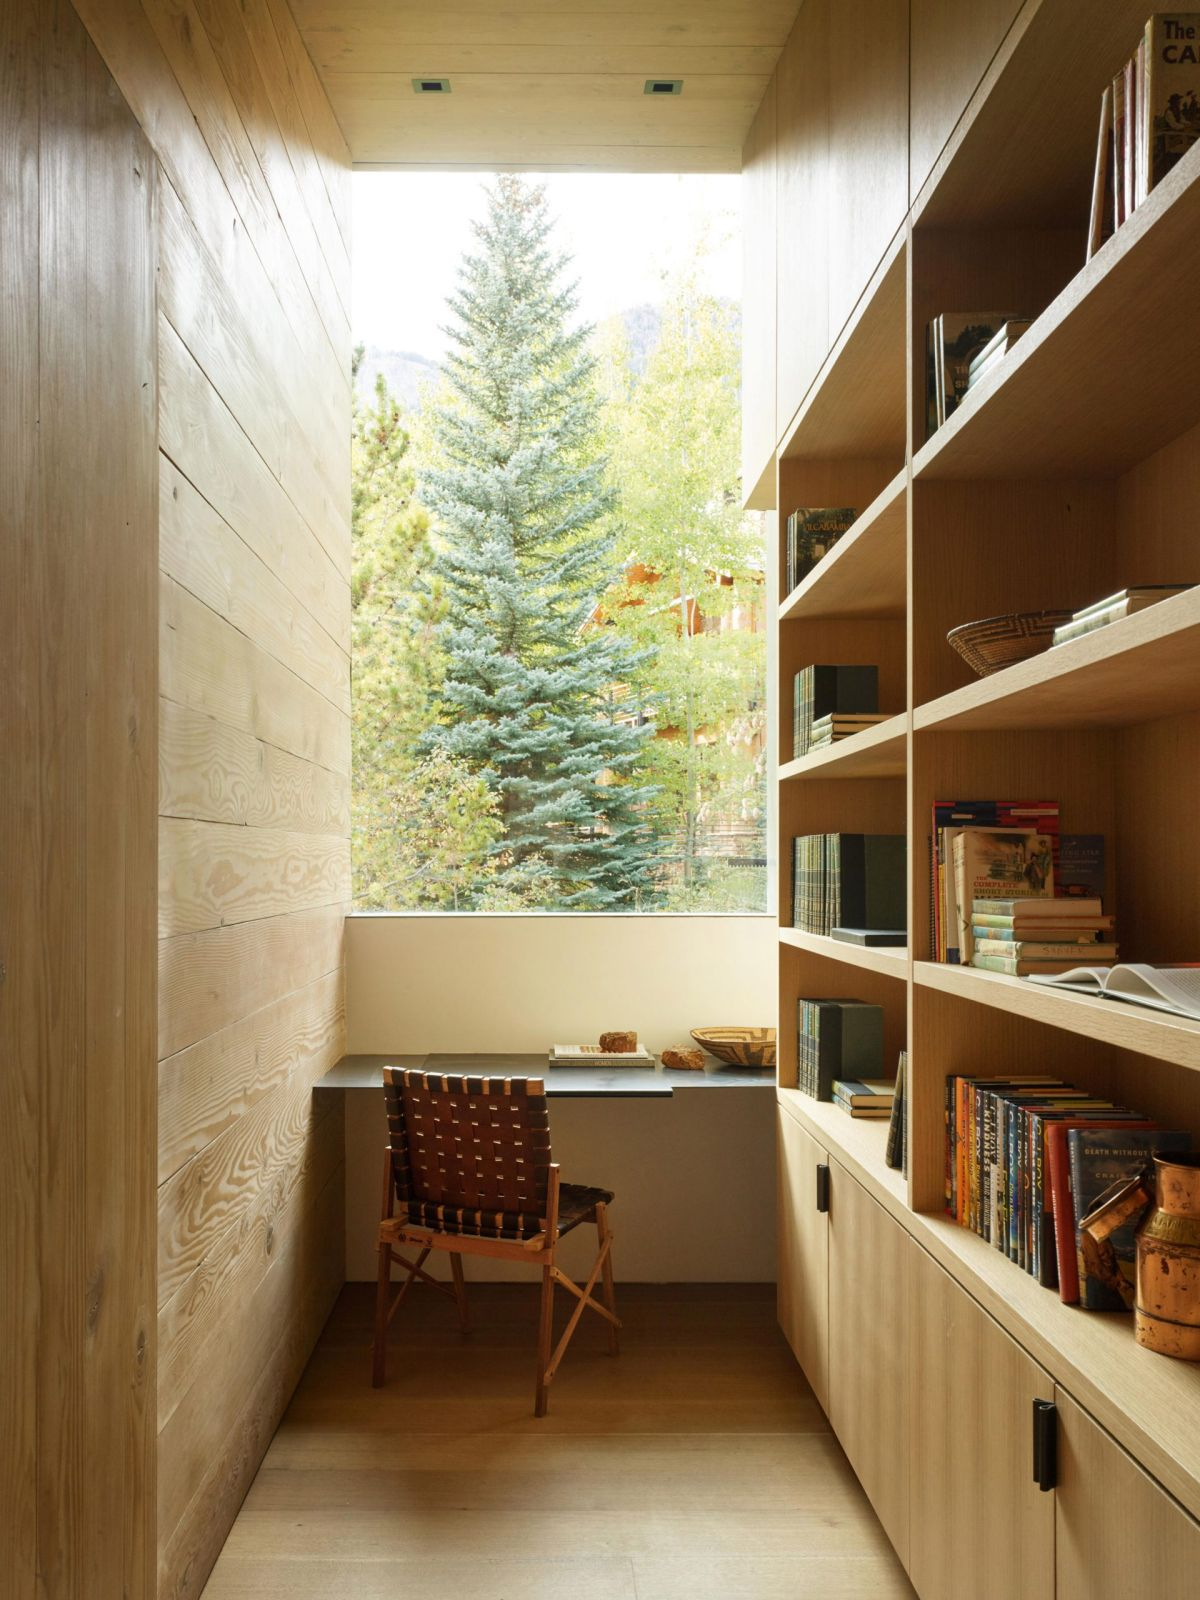 There's also a little nook with a desk in front of a big window and bookshelves along the wall